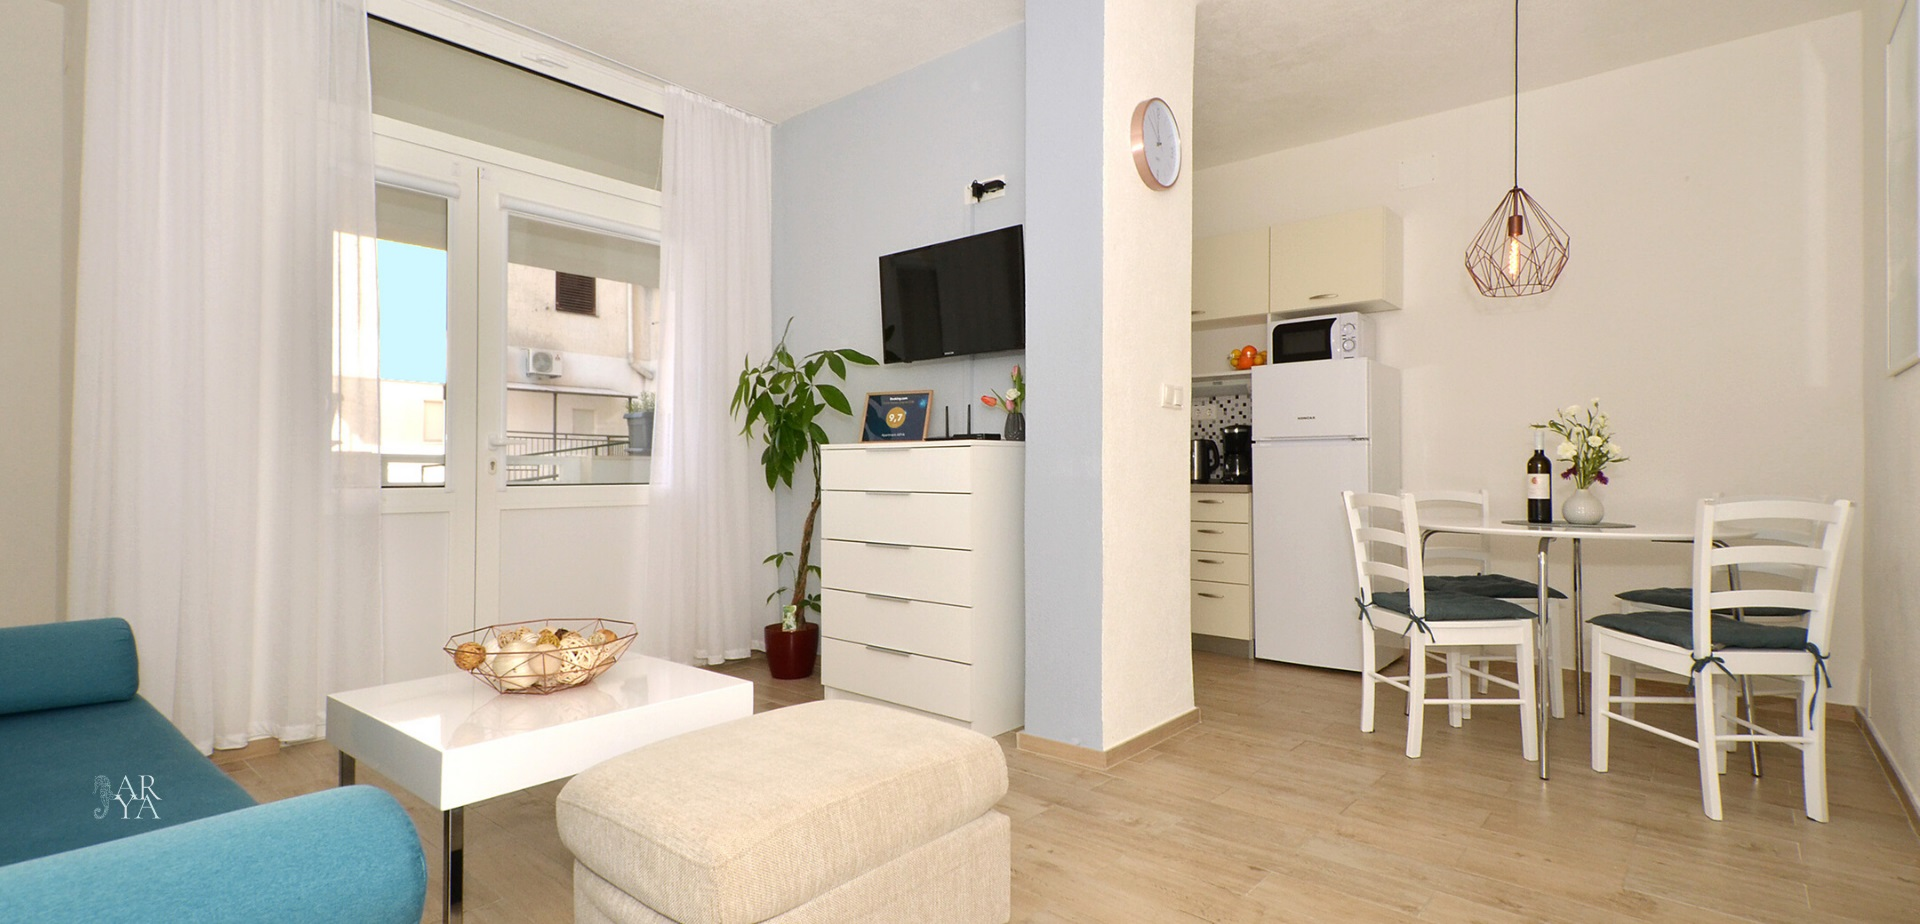 apartment arya makarska accommodation croatia 1 living room